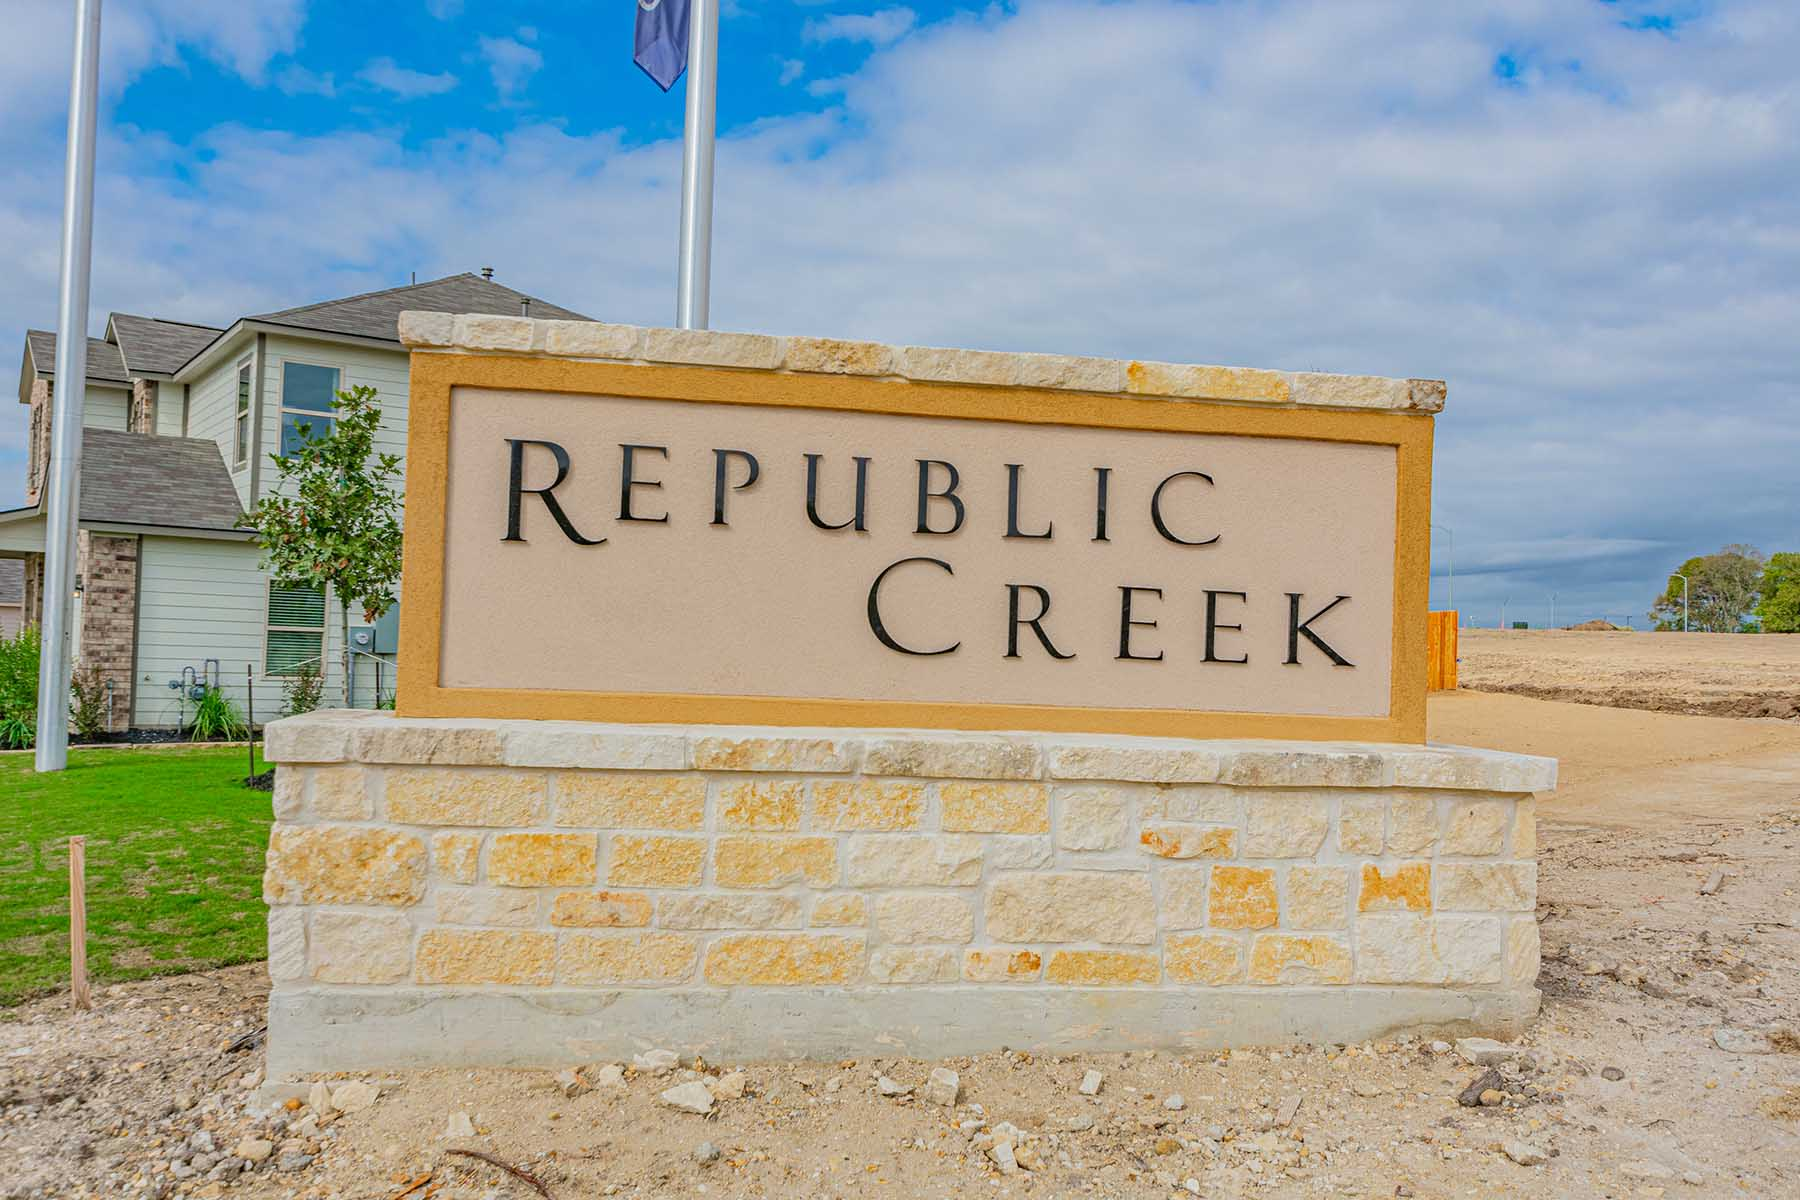 Republic Creek Entrance